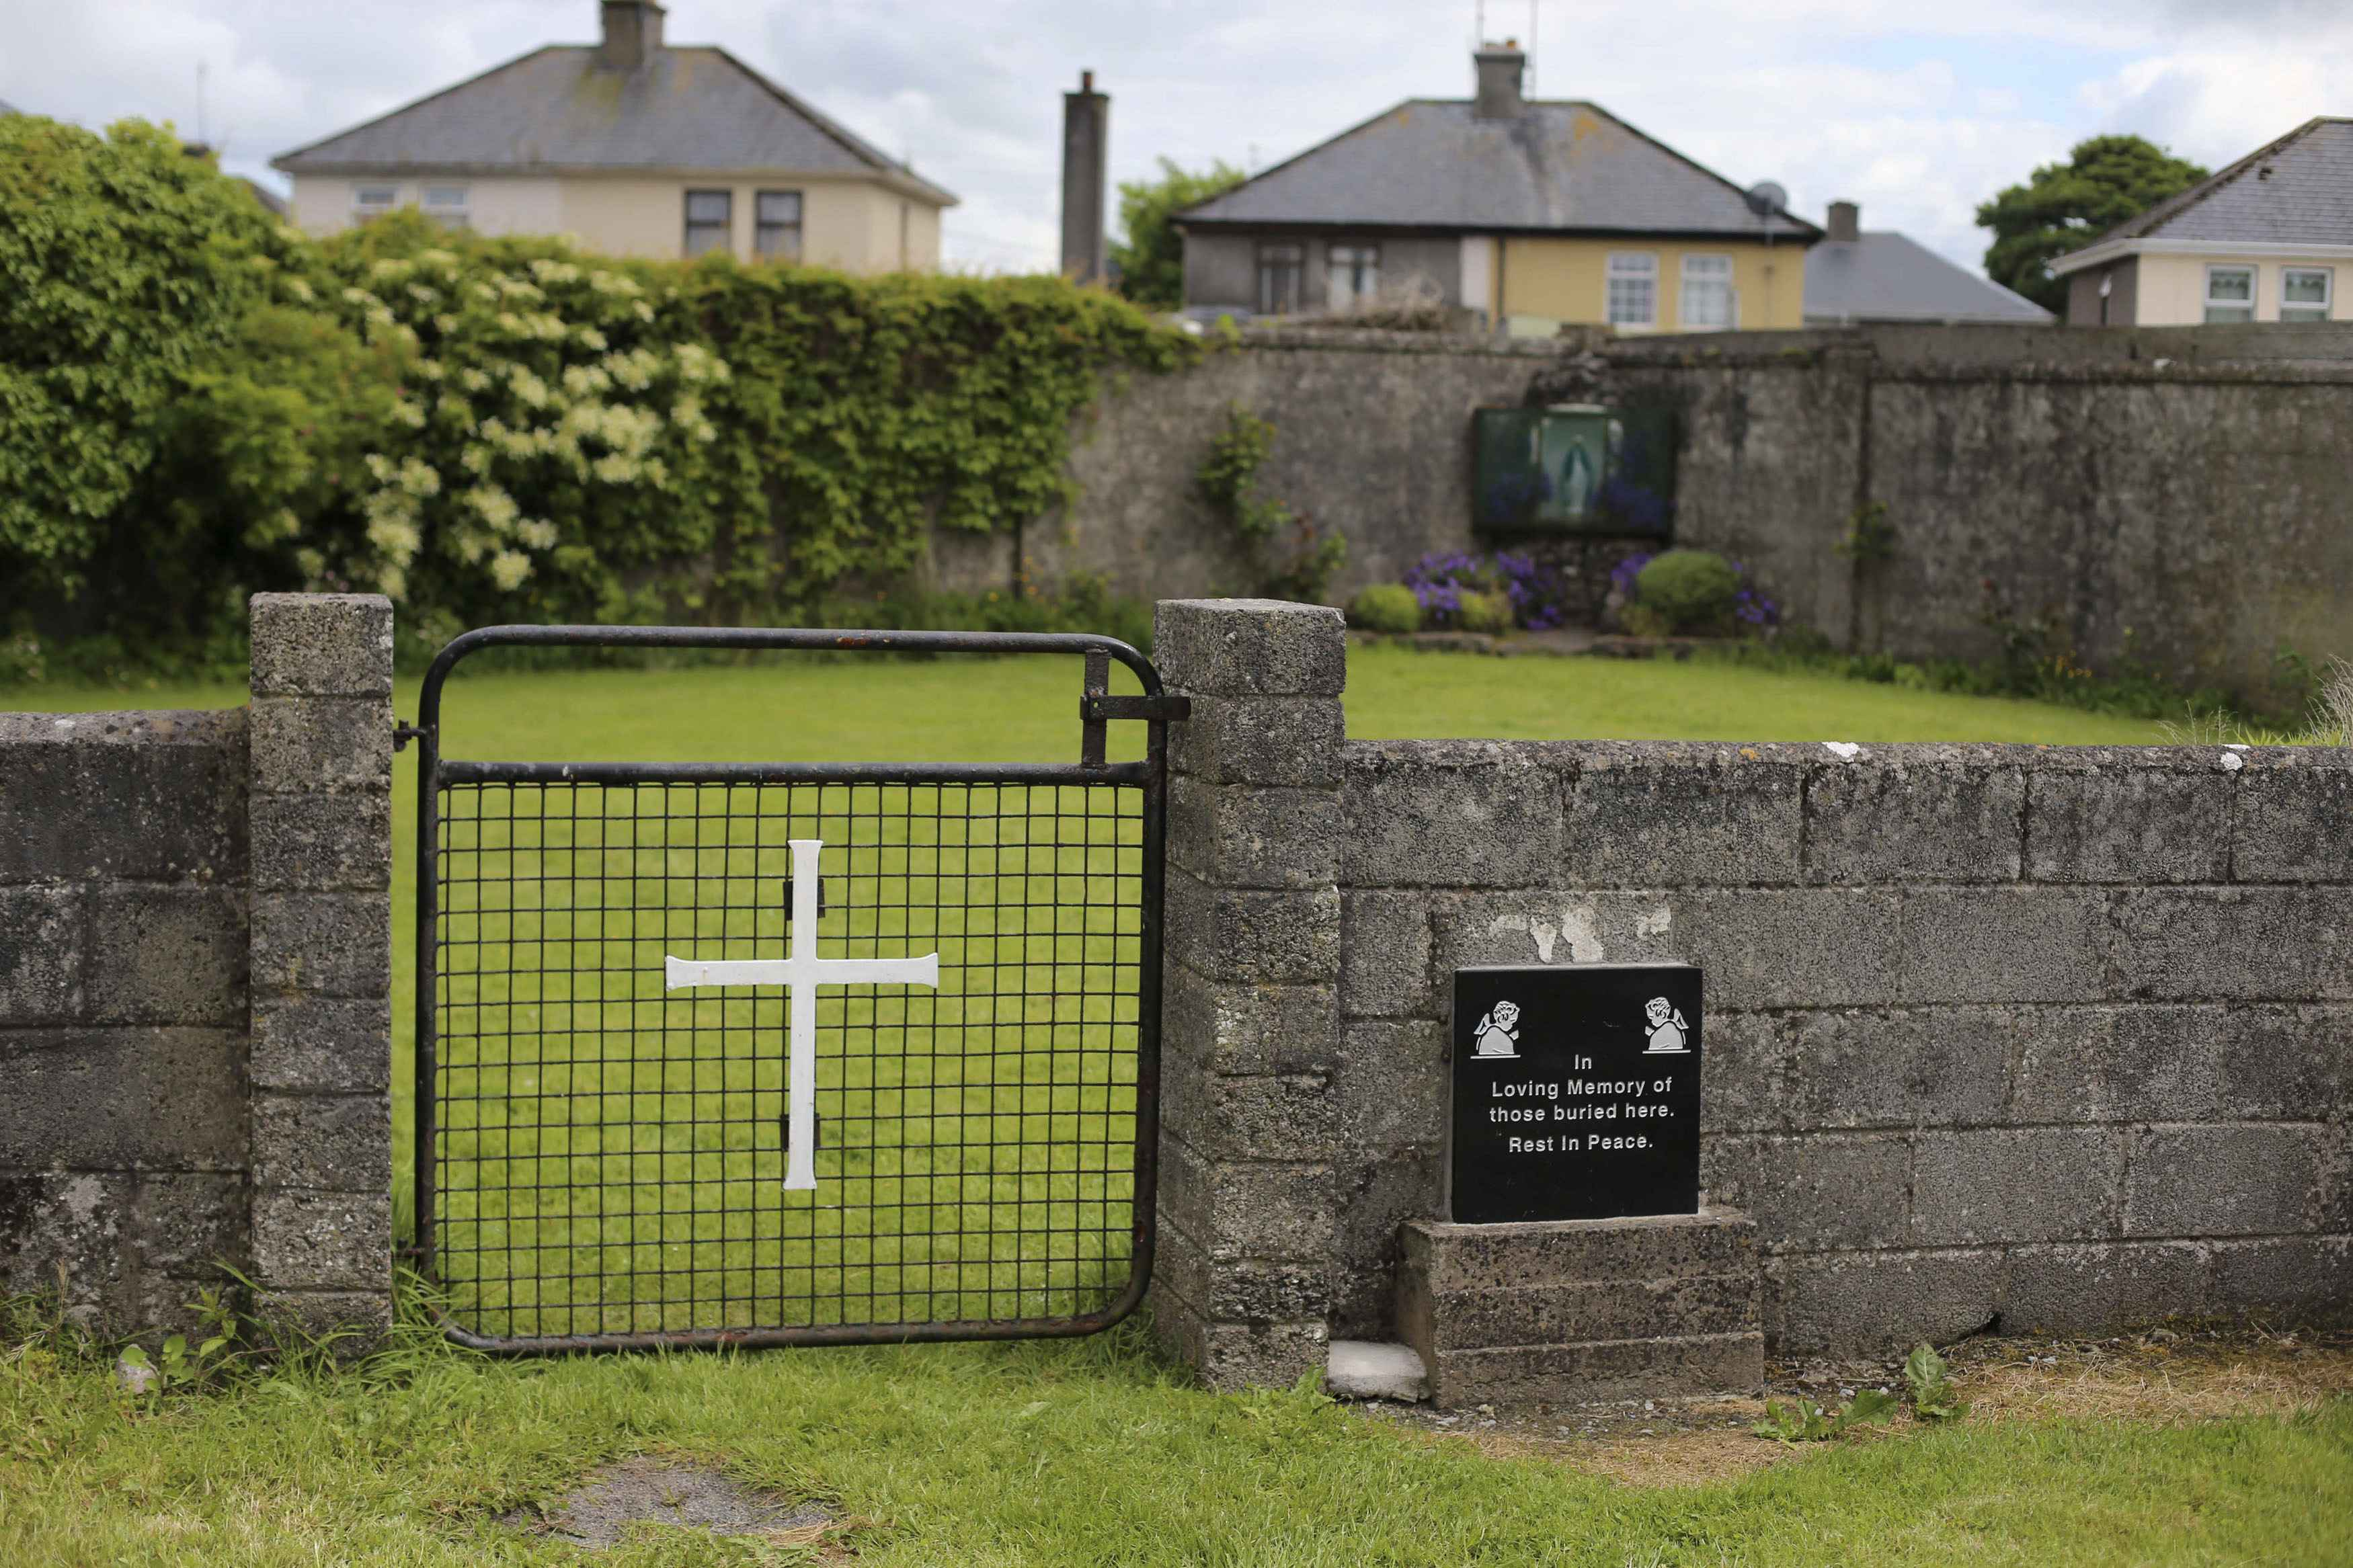 The entrance to the site of a mass grave of hundreds of children who died in the former Bons Secours home for unmarried mothers is seen in Tuam, County Galway June 4, 2014. Local residents on Tuesday said they hoped a campaign is making headway to commemorate the unmarked mass grave of nearly 800 babies found in Tuam. The infants were buried without coffins in the grounds of a former home for unmarried mothers between 1925 and 1961. A total of 796 babies toddlers and children were buried in this mass grave. Death records show the children died from malnutrition and infectious disease. REUTERS/Stringer (IRELAND - Tags: OBITUARY HEALTH)